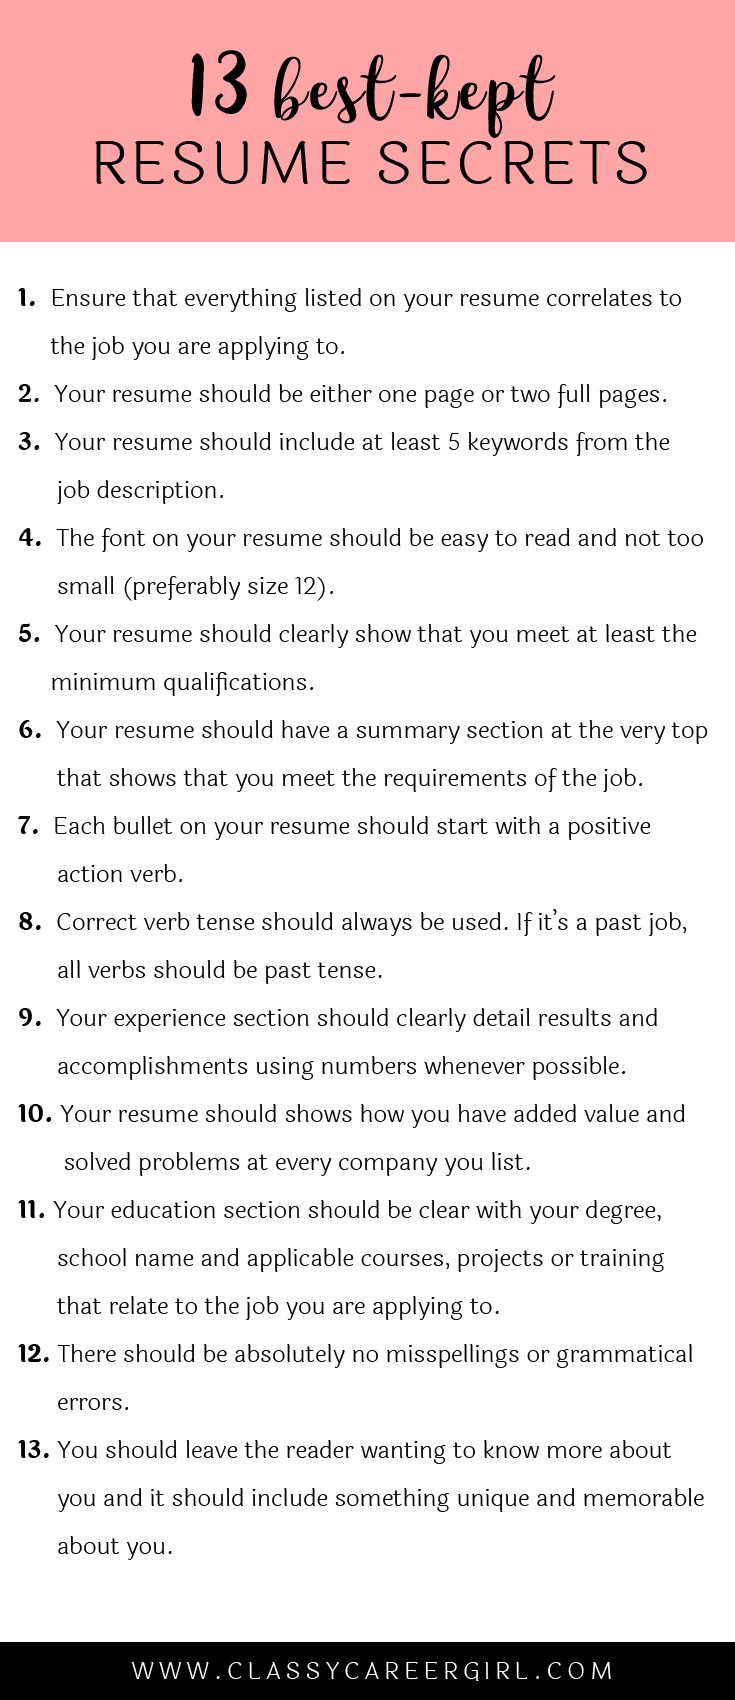 Opposenewapstandardsus  Personable  Ideas About Resume On Pinterest  Cv Format Resume Cv And  With Inspiring Some Hiring Managers Will Toss Your Resume Out If You Dont Know These  With Astonishing Customer Service Description For Resume Also How To Make A Resume On Microsoft Word  In Addition Tom Brady College Resume And What To Look For In A Resume As Well As Sample Of Objective For Resume Additionally Sales Manager Resume Objective From Pinterestcom With Opposenewapstandardsus  Inspiring  Ideas About Resume On Pinterest  Cv Format Resume Cv And  With Astonishing Some Hiring Managers Will Toss Your Resume Out If You Dont Know These  And Personable Customer Service Description For Resume Also How To Make A Resume On Microsoft Word  In Addition Tom Brady College Resume From Pinterestcom